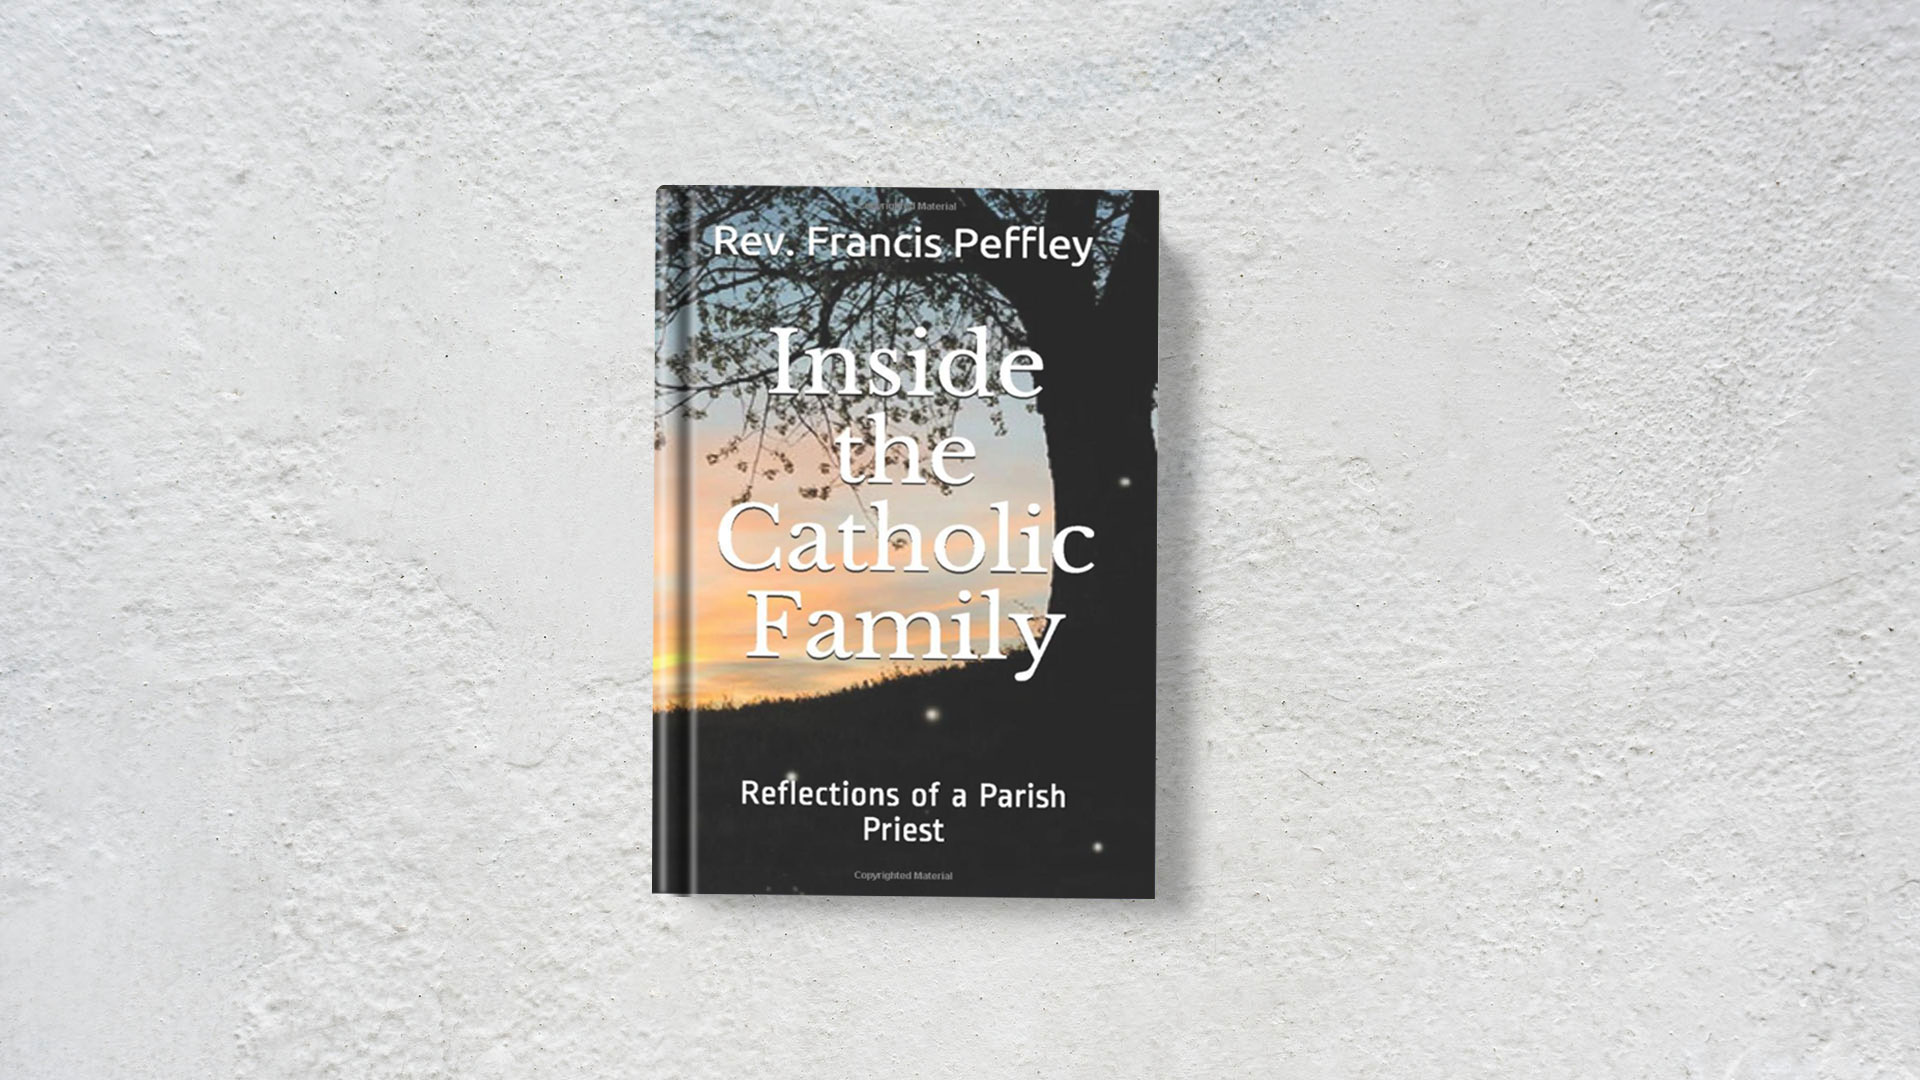 Inside-the-Catholic-Family-Reflections-of-a-Parish-Priest-by-Fr.-Francis-Peffley book cover